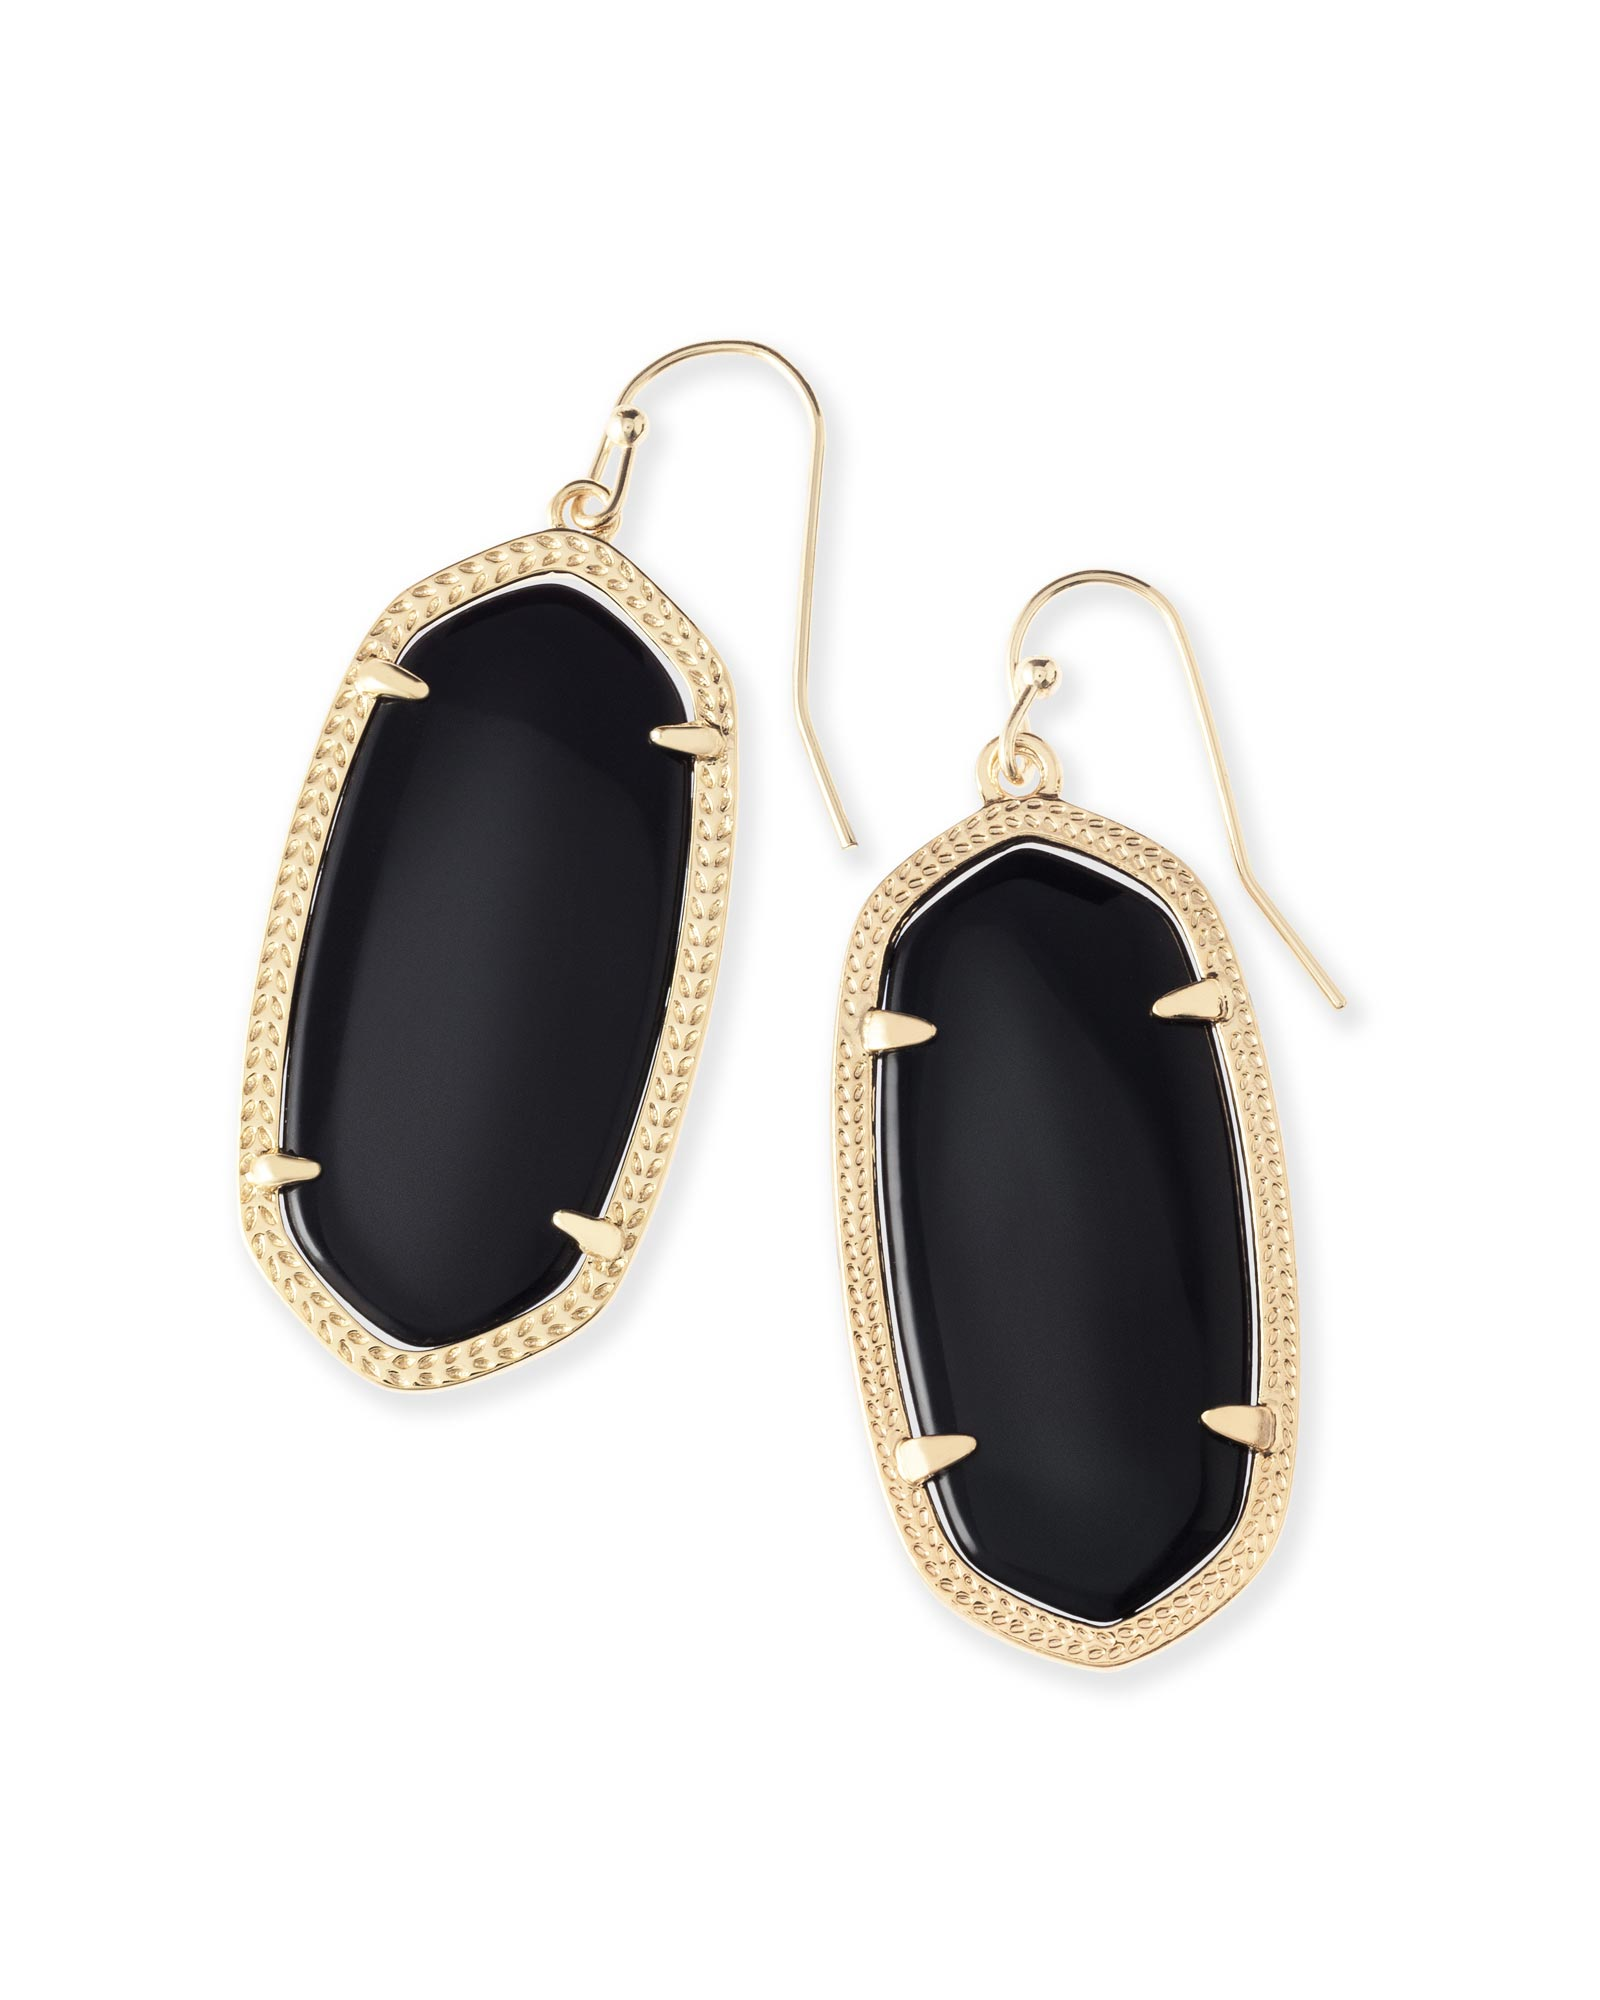 Elle Gold Earrings in Black